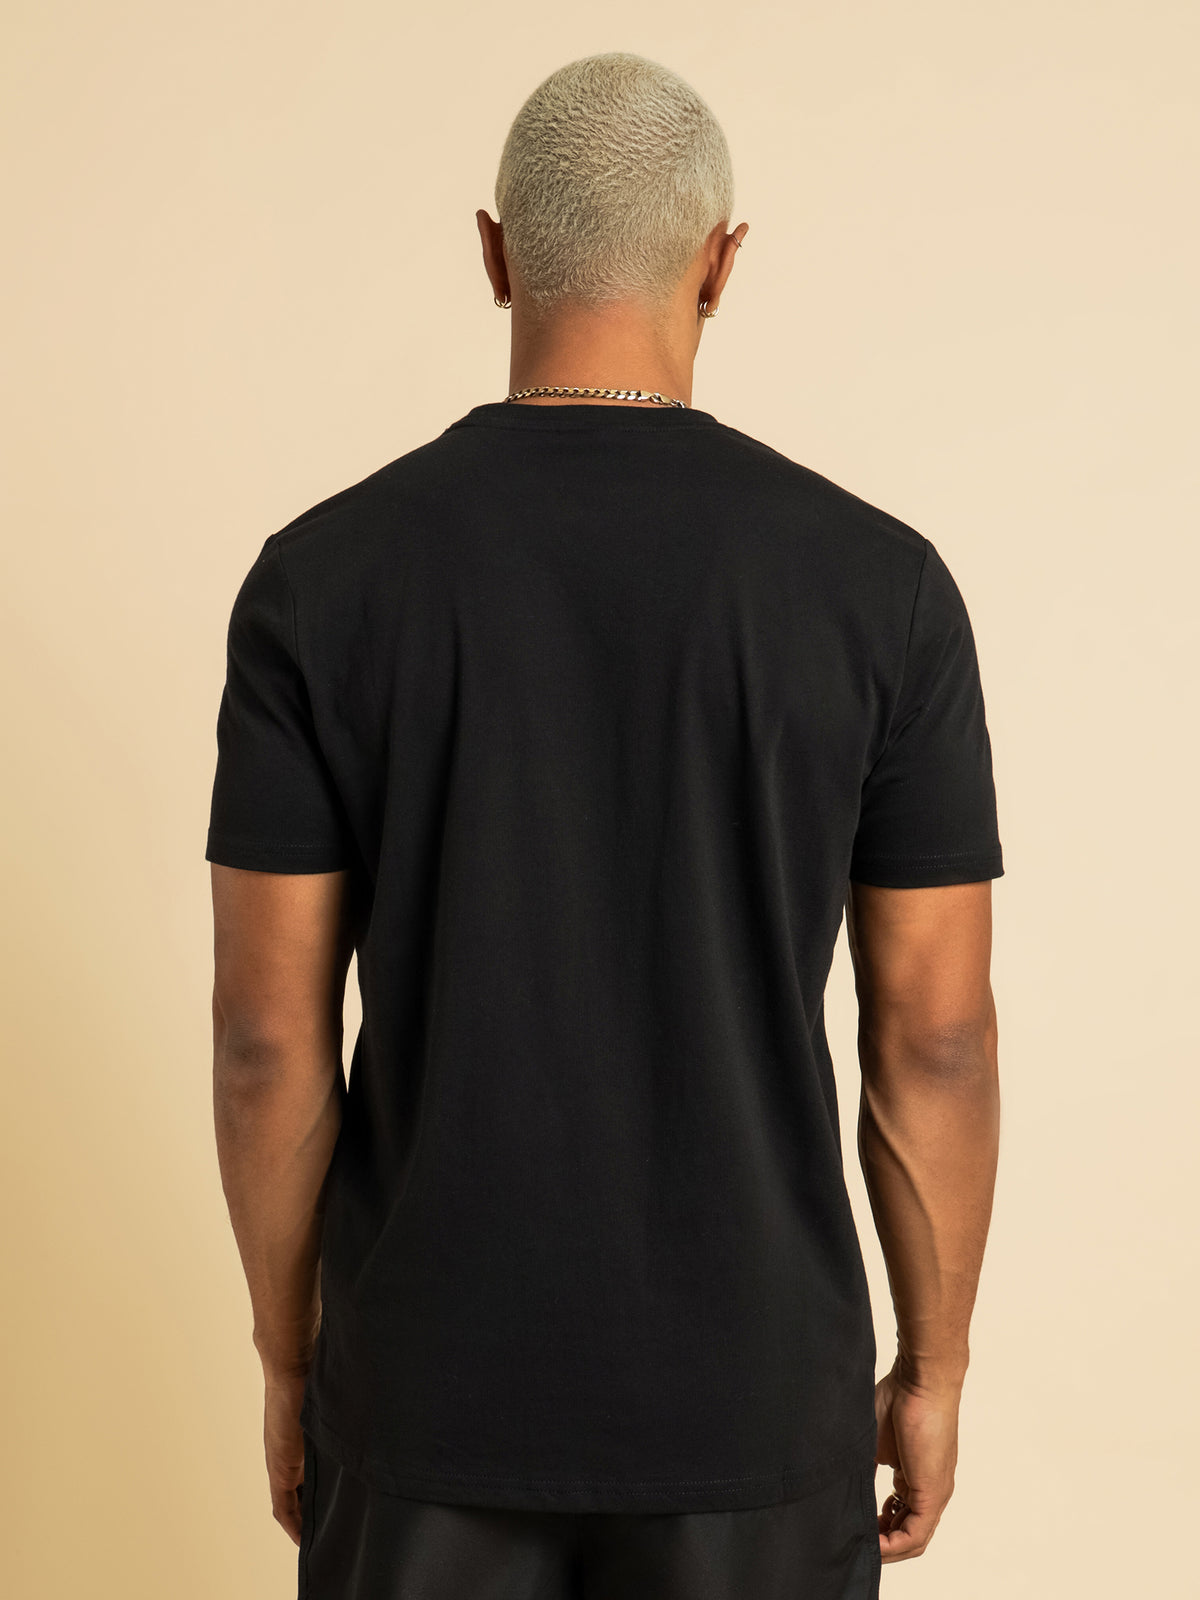 Ombrono T-Shirt in Black